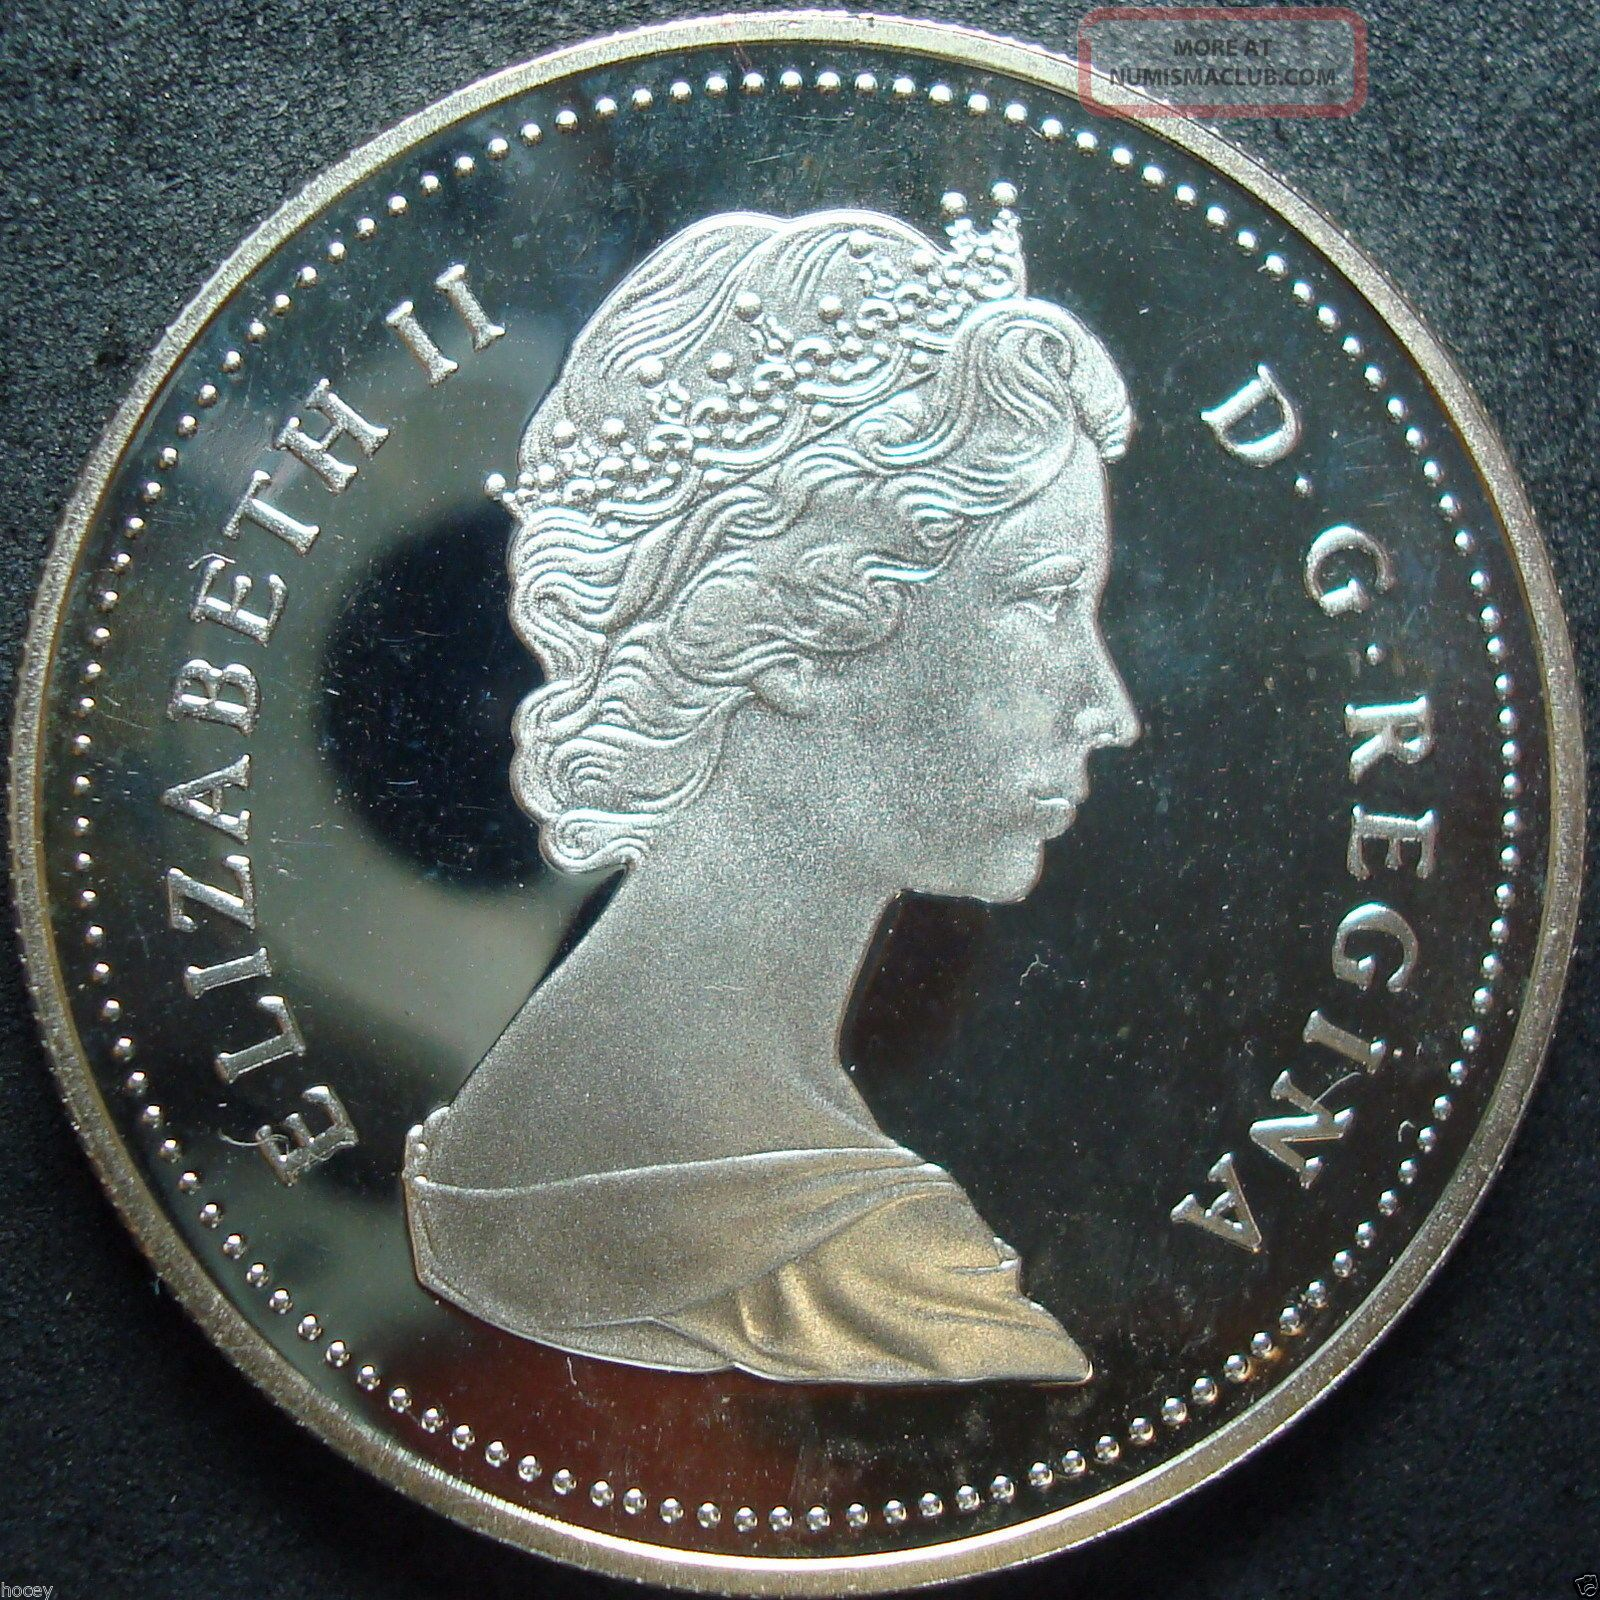 1989 Canada Proof Mackenzie River Silver Dollar Coin